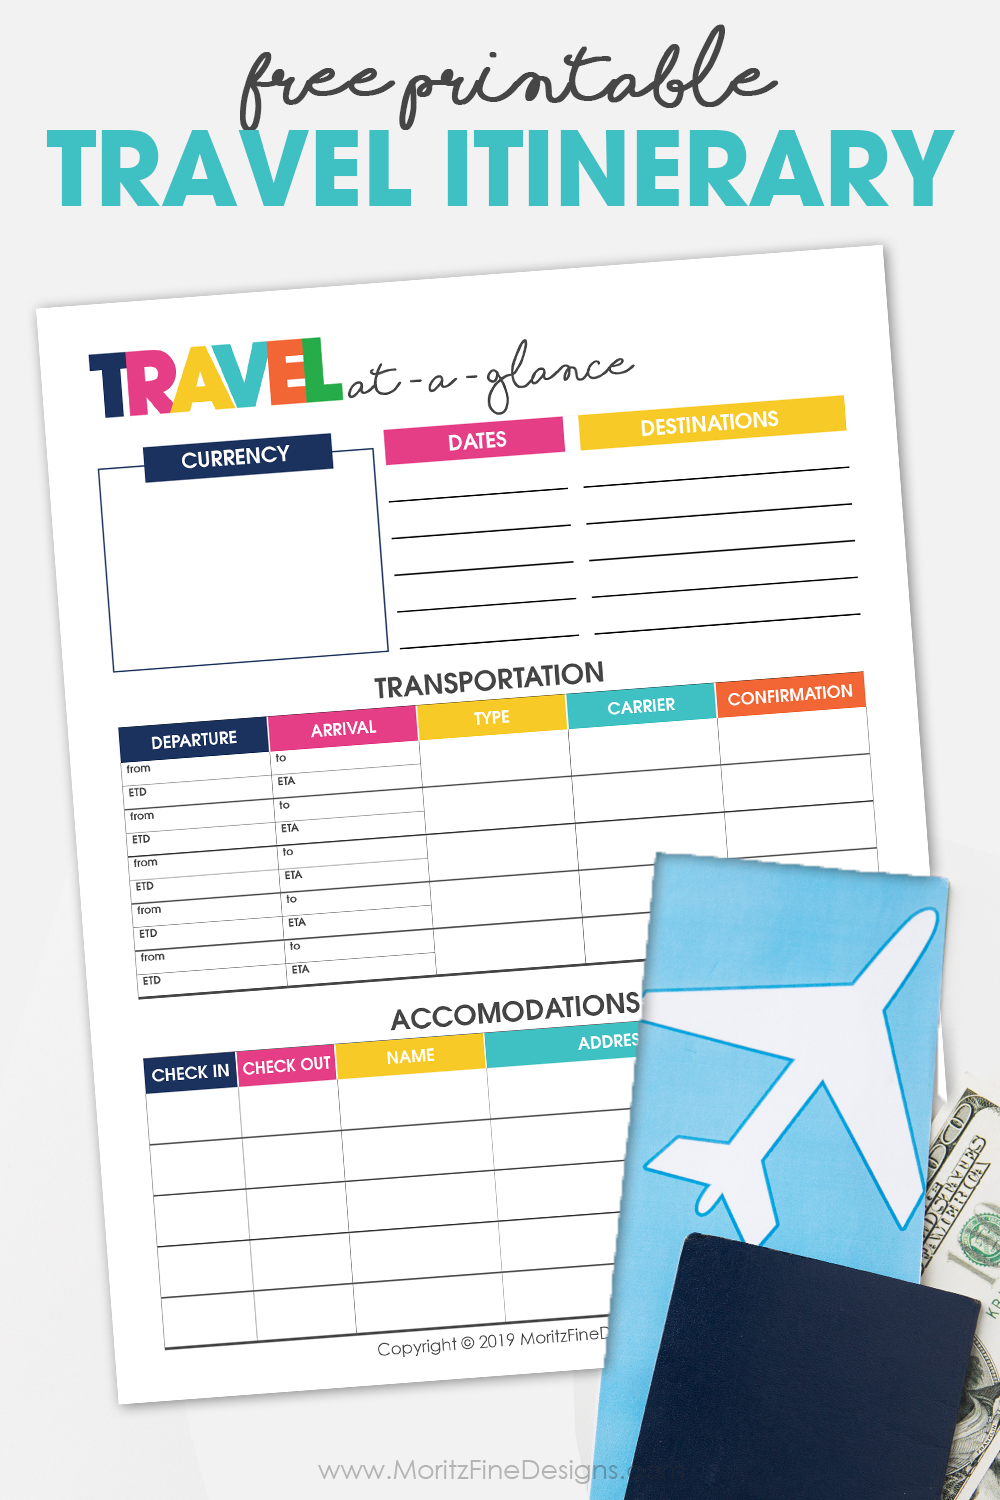 Use the free printable Travel Itinerary Planner for your next vacation. Keep track of everything--dates, transportation, accommodations & more.